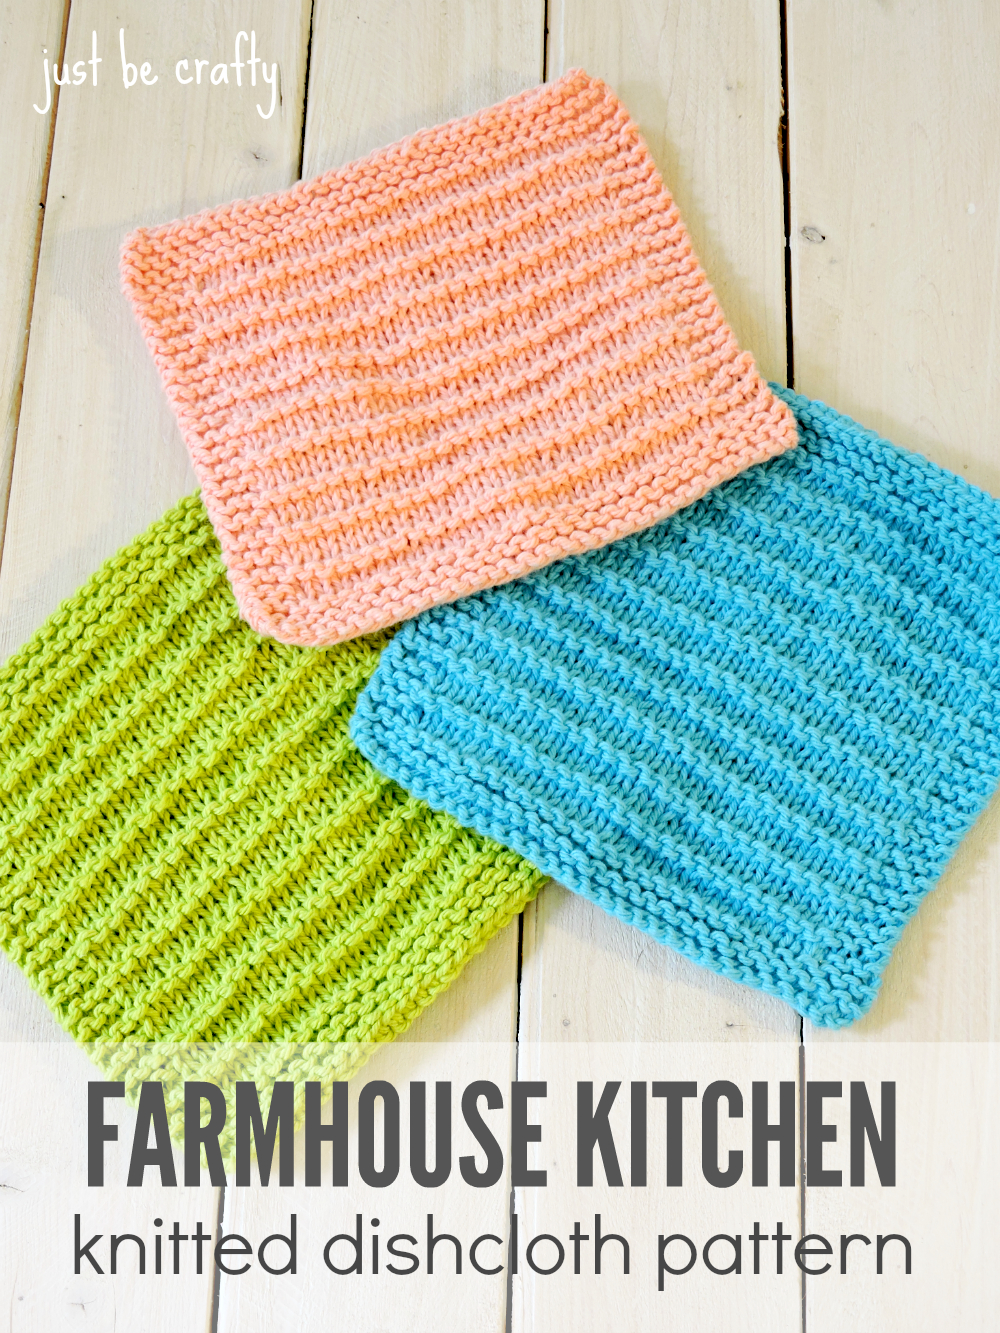 Washcloth Knitting Pattern Farmhouse Kitchen Knitted Dishcloths Moogly Community Board